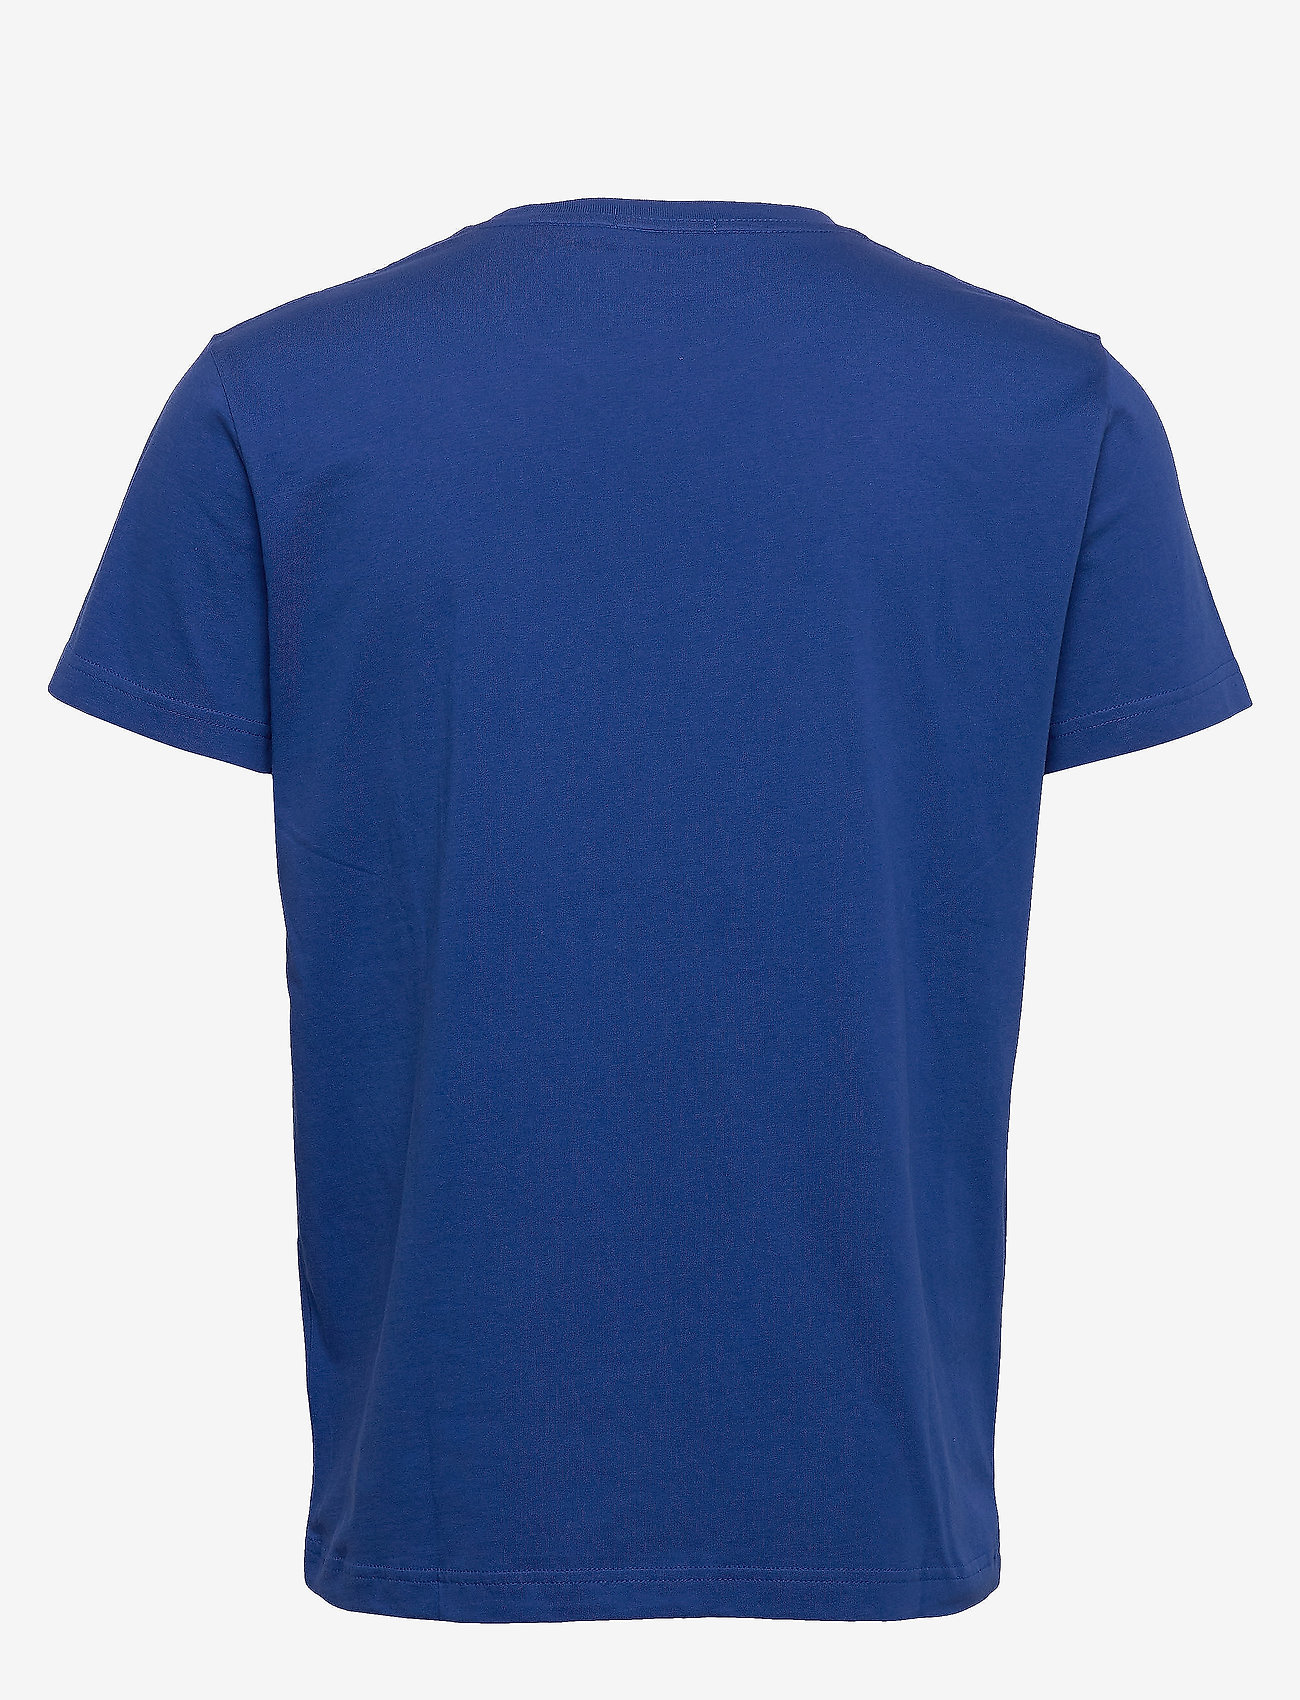 GANT - ORIGINAL SS T-SHIRT - short-sleeved t-shirts - crisp blue - 1